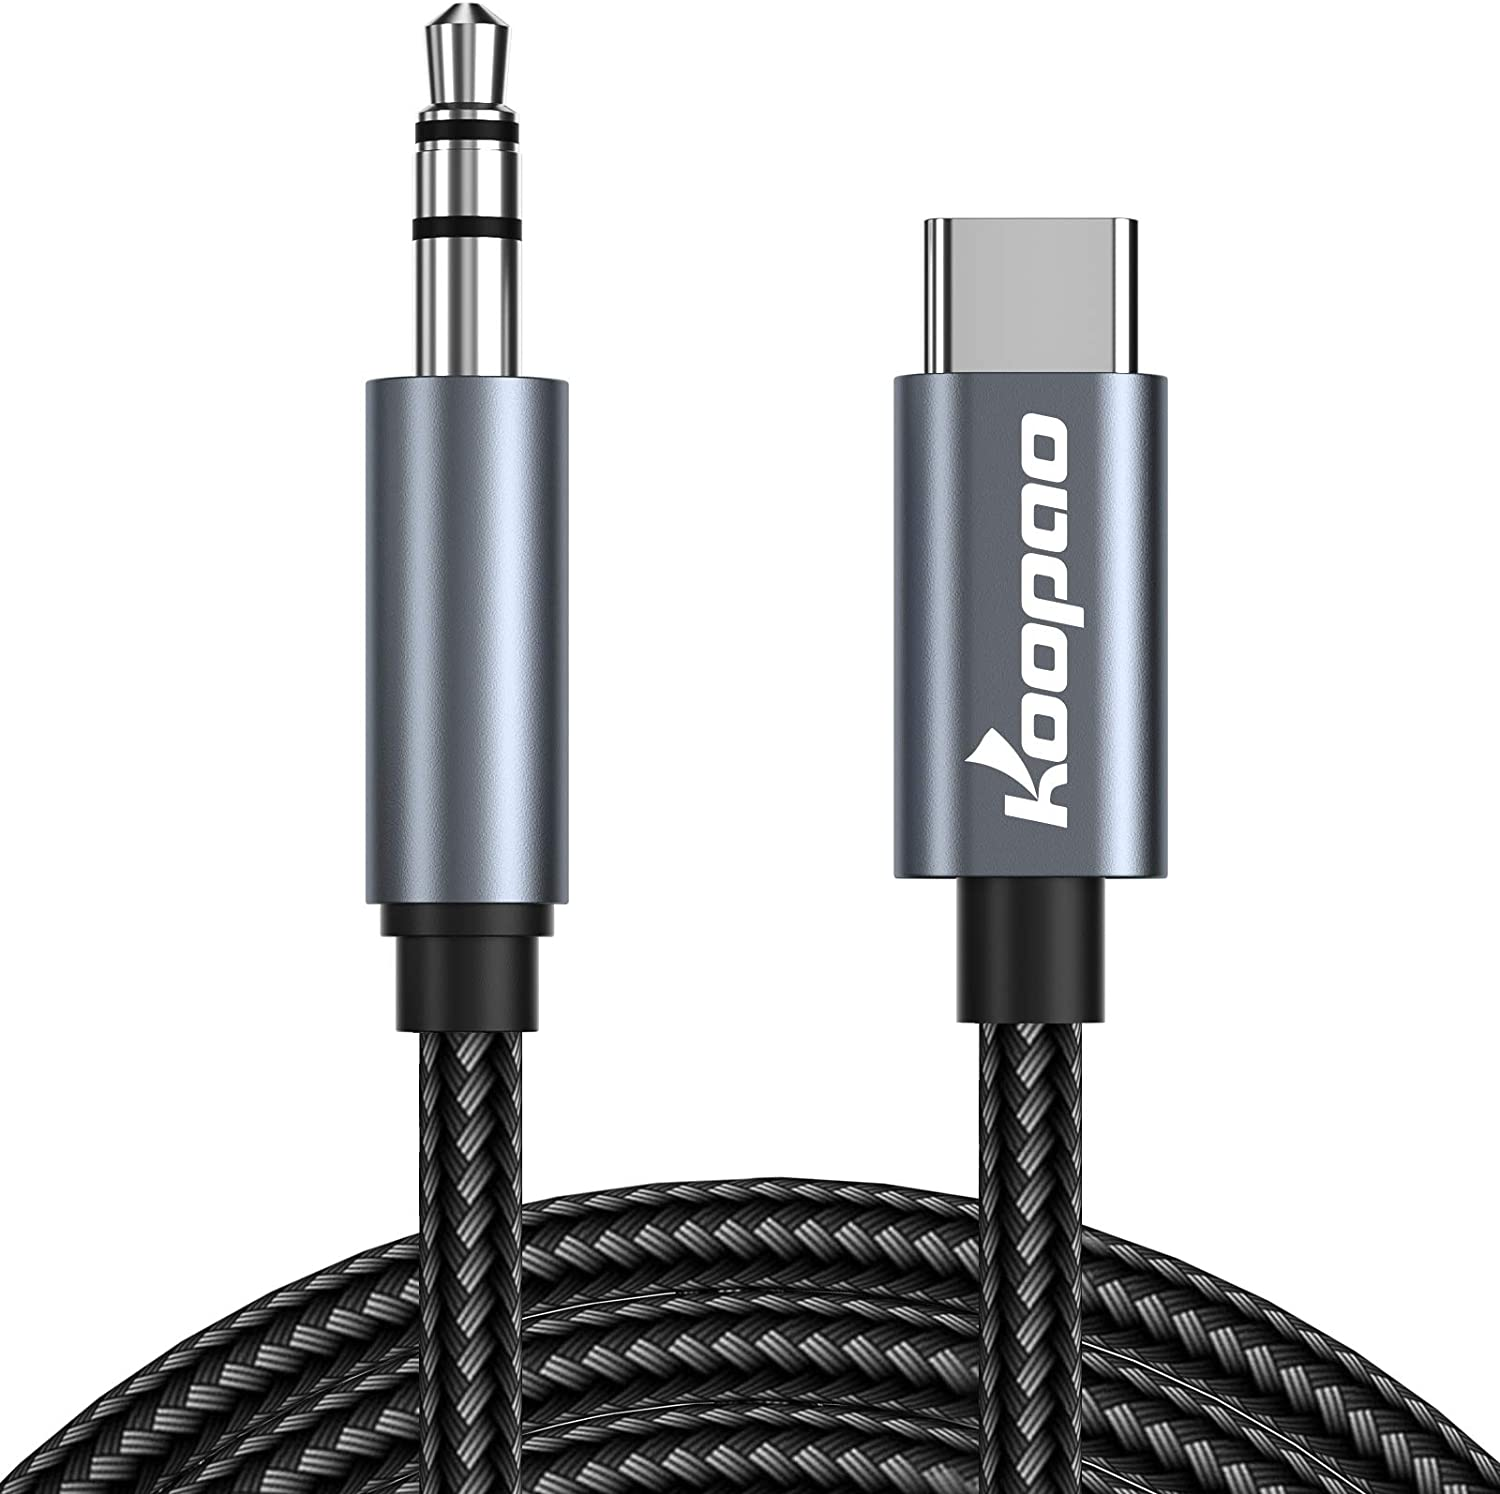 USB C to 3.5mm Audio Aux Jack 6.6FT Cable, KOOPAO Type C Adapter to 3.5mm Headphone Stereo Cord Car Compatible with iPad Pro 2018 Google Pixel 2 3 4 XL (6.6FT)